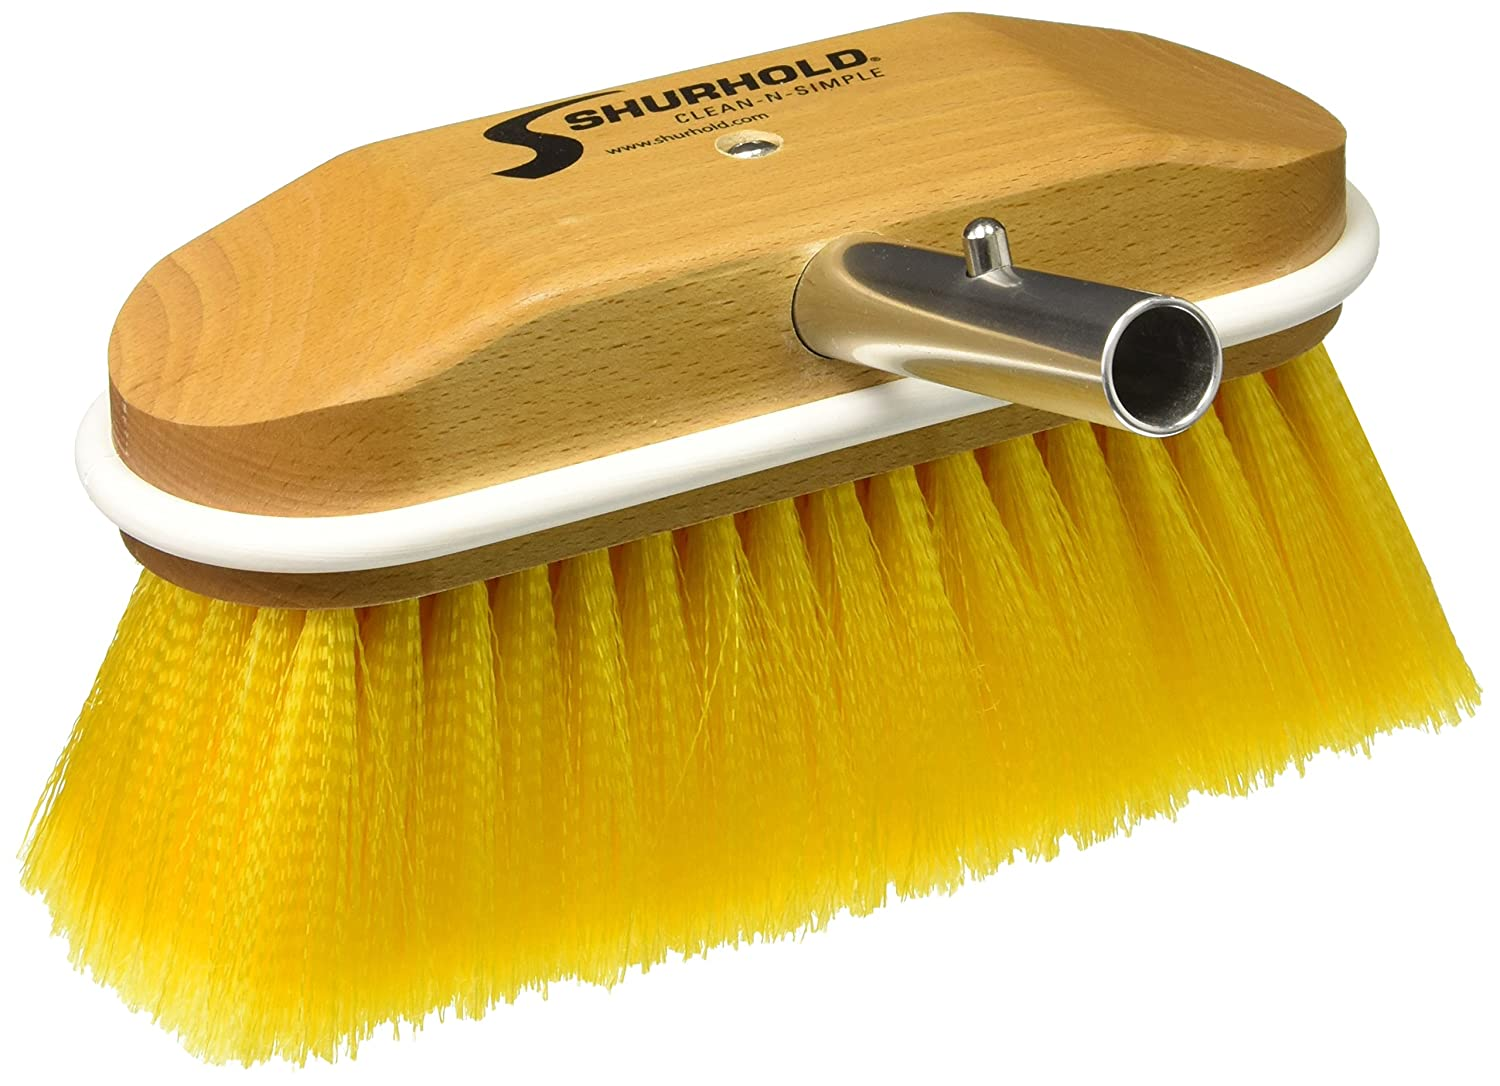 Shurhold 310 8' Window and Hull Brush with Extra Soft Blue Nylon Bristles